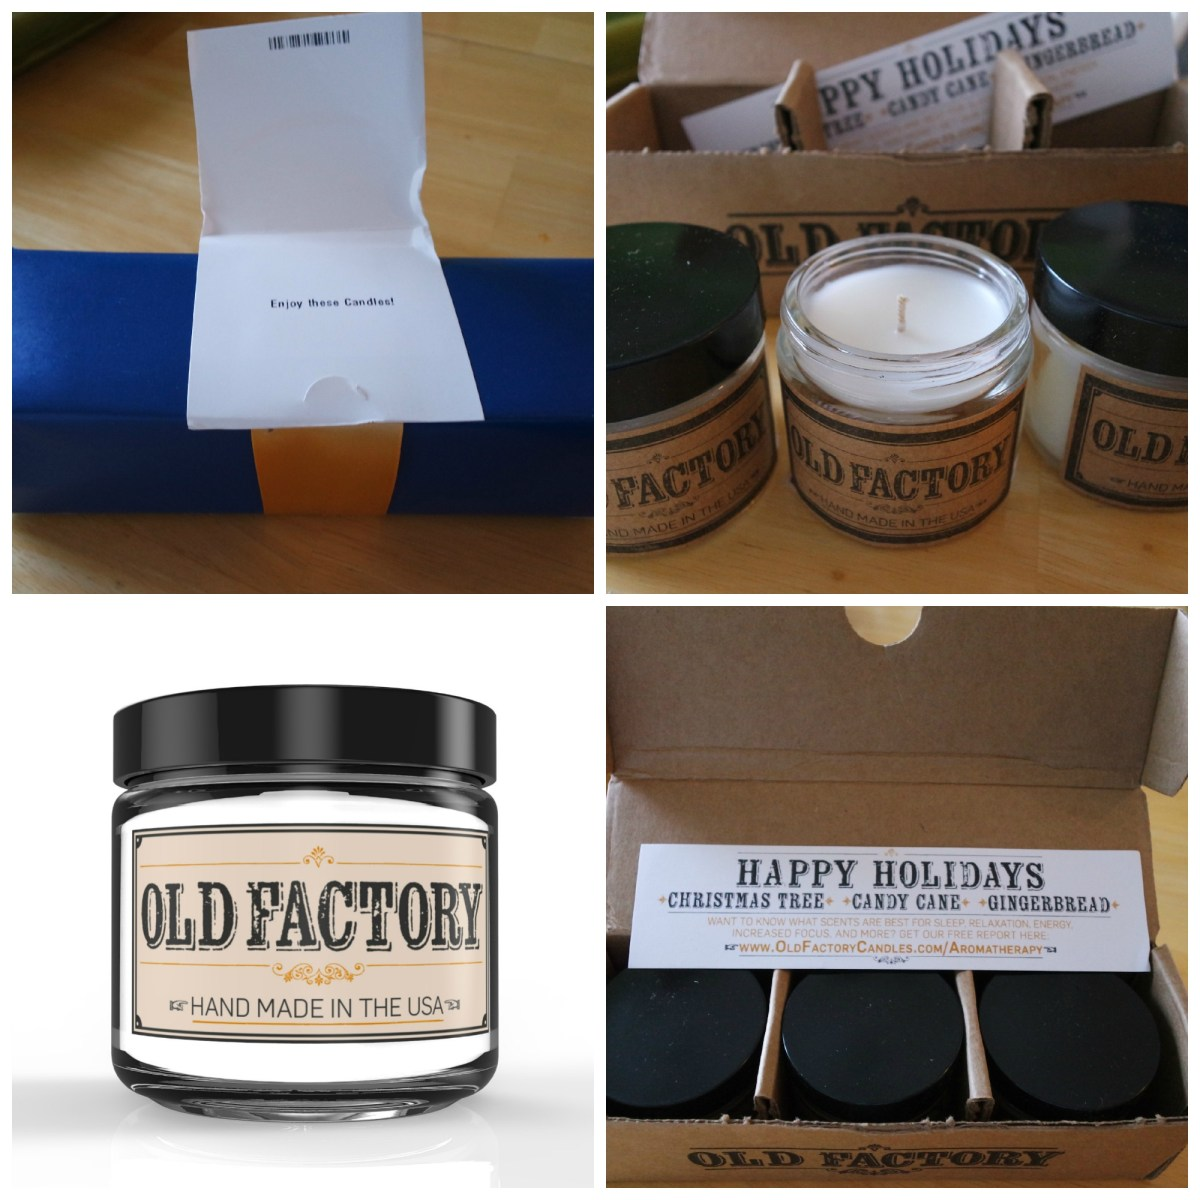 Old Factory Candles Smell Great & Last! #oldfactory #Giveaway #dadchat